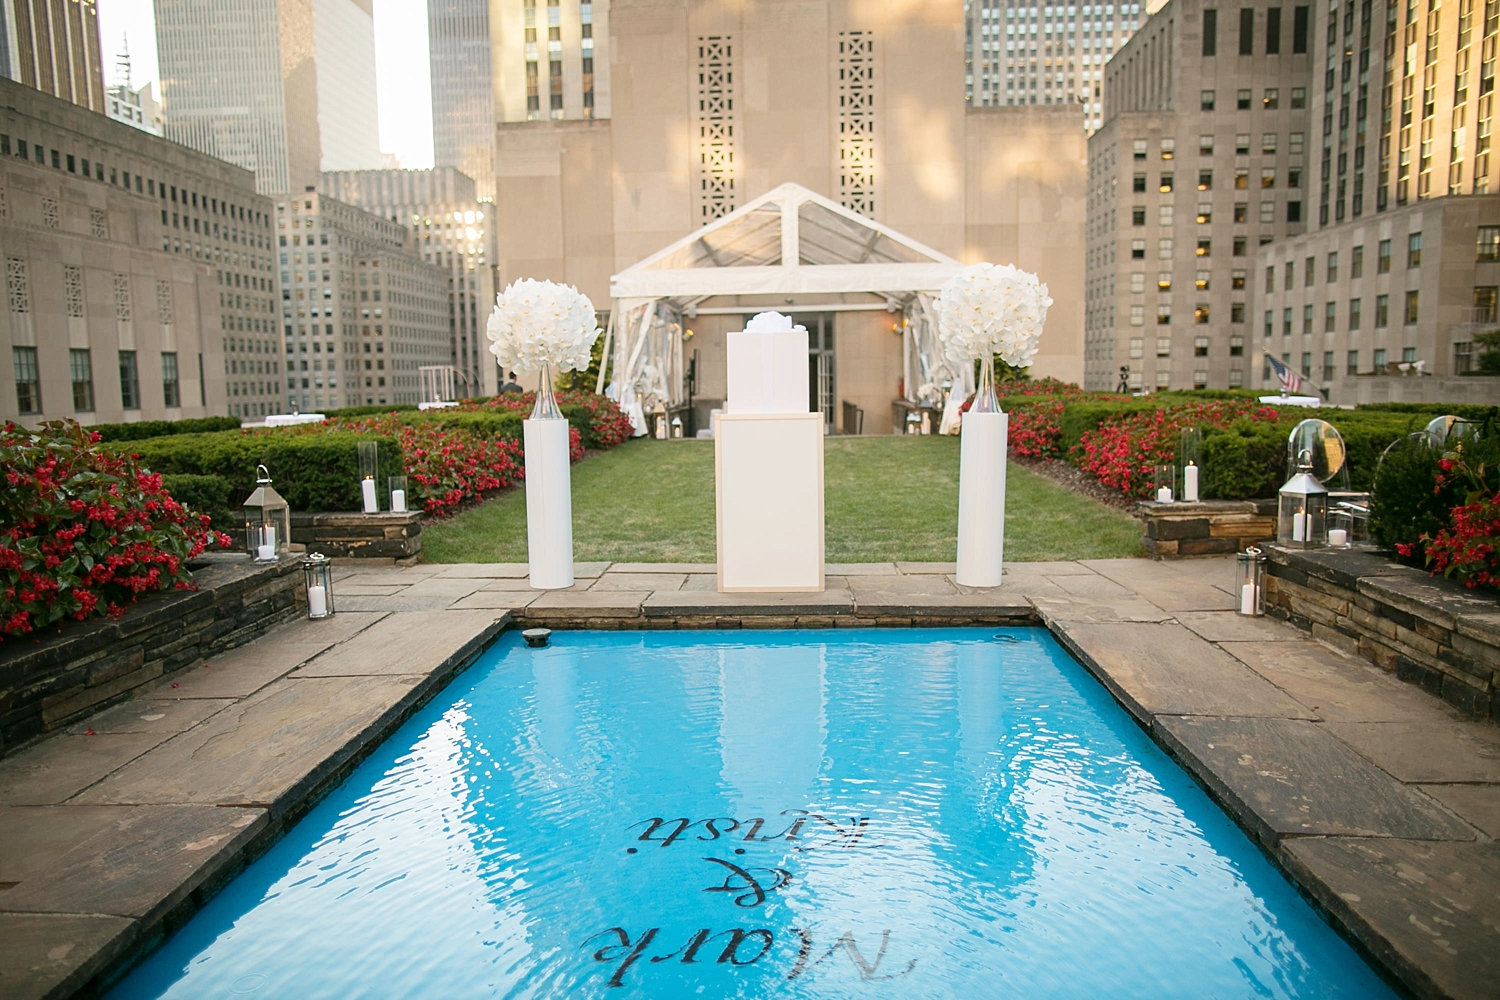 620 loft and garden luxury name in water new york proposal the heart bandits - 620 Loft And Garden